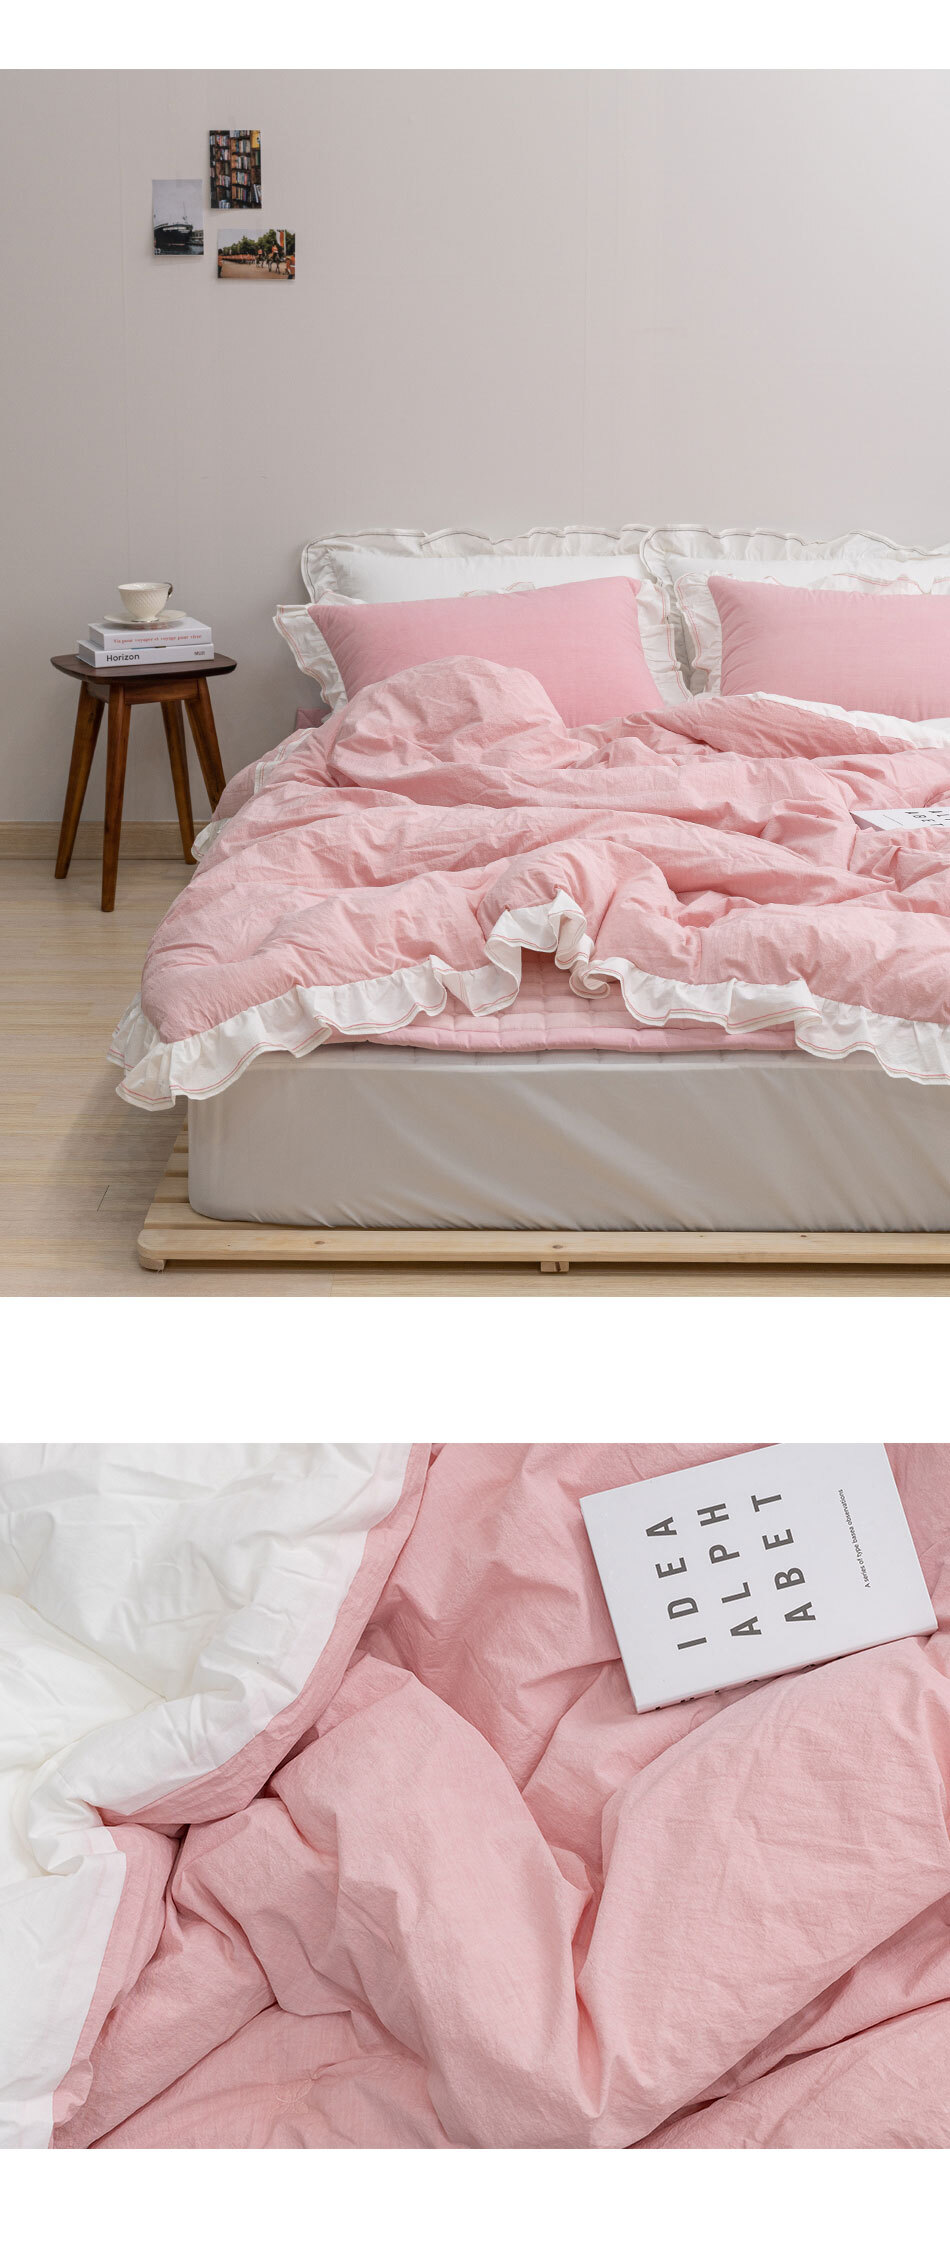 stay_bed_pink4.jpg